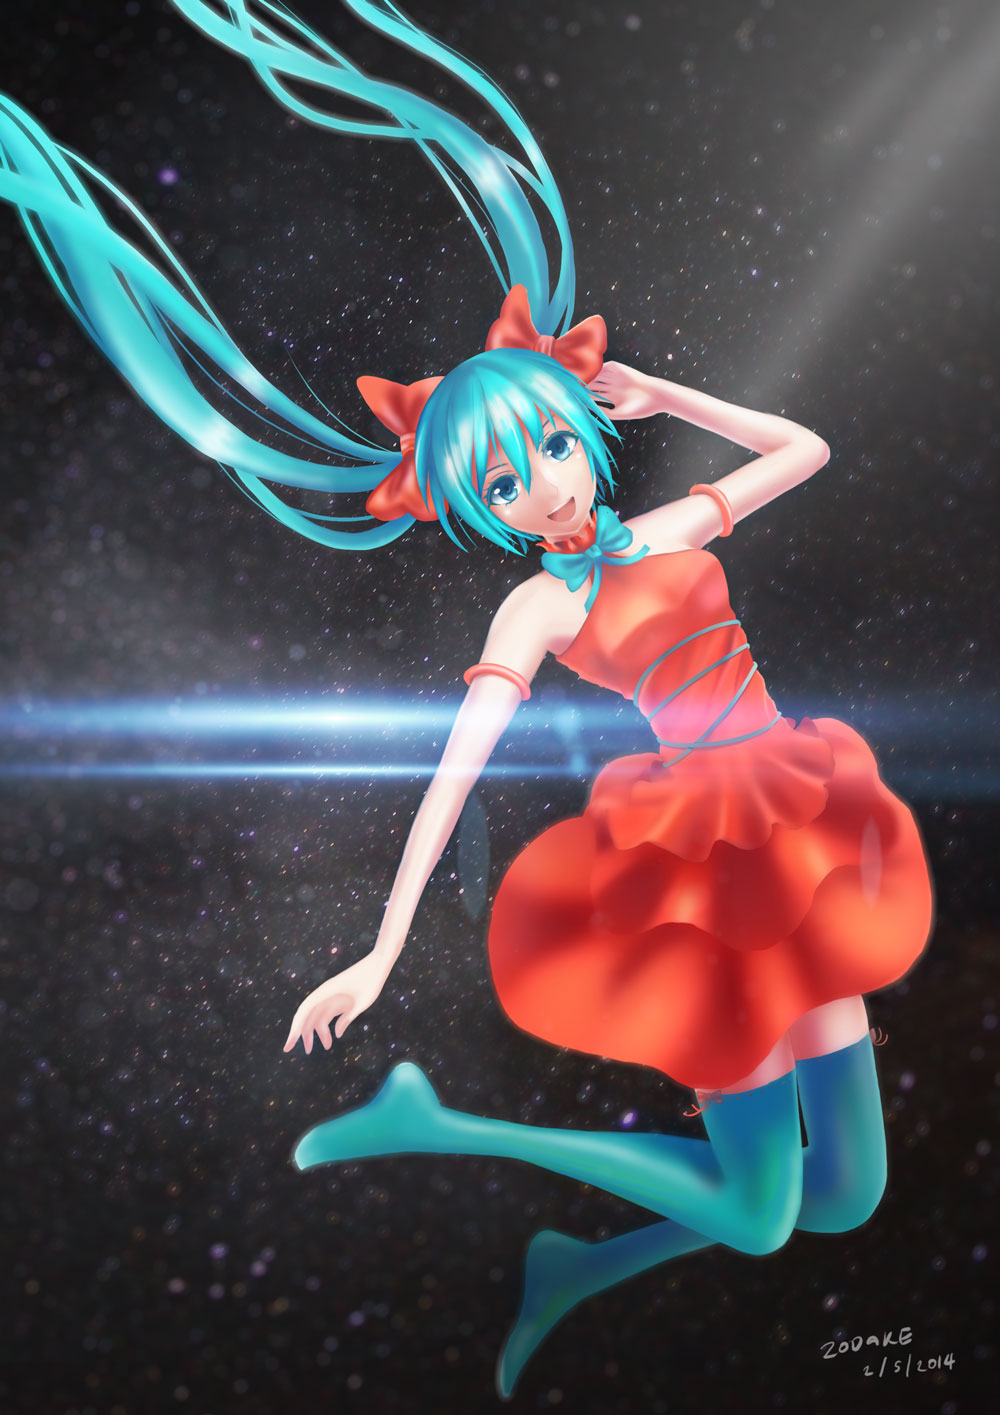 1girl aqua_eyes aqua_hair aqua_legwear dress hatsune_miku open_mouth smile solo thighhighs twintails vocaloid zodake